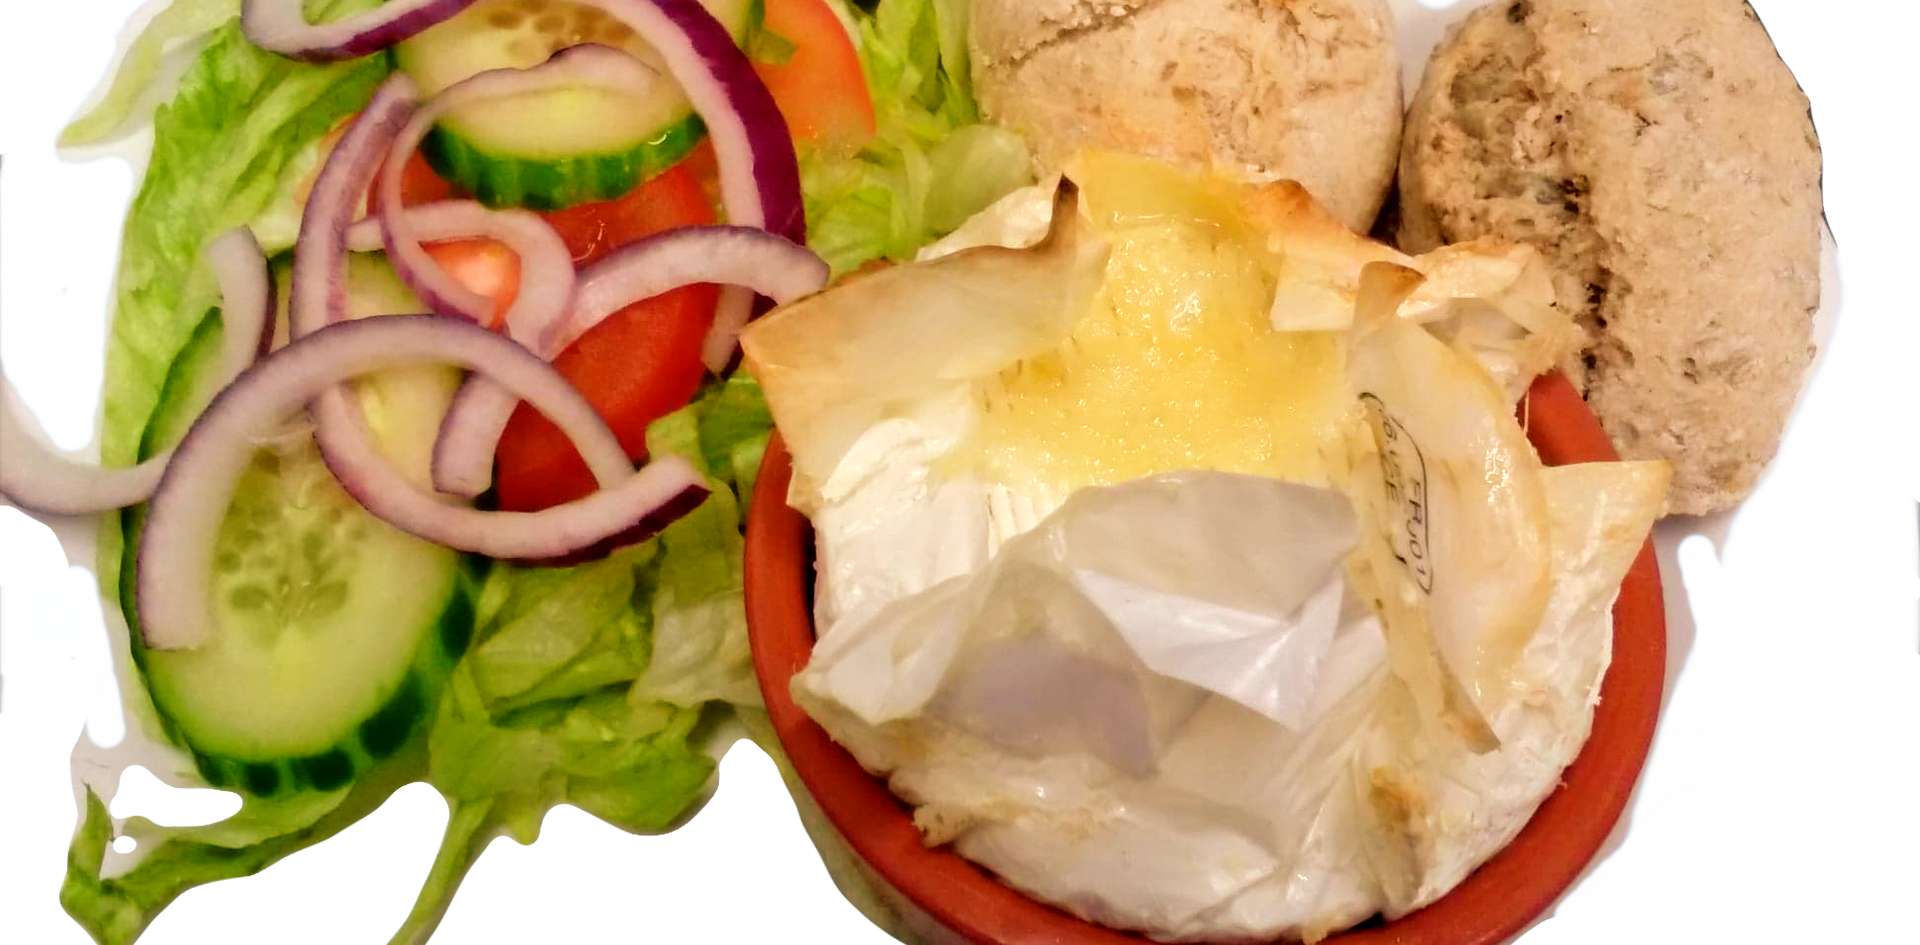 Camembert served with Crispy Roll